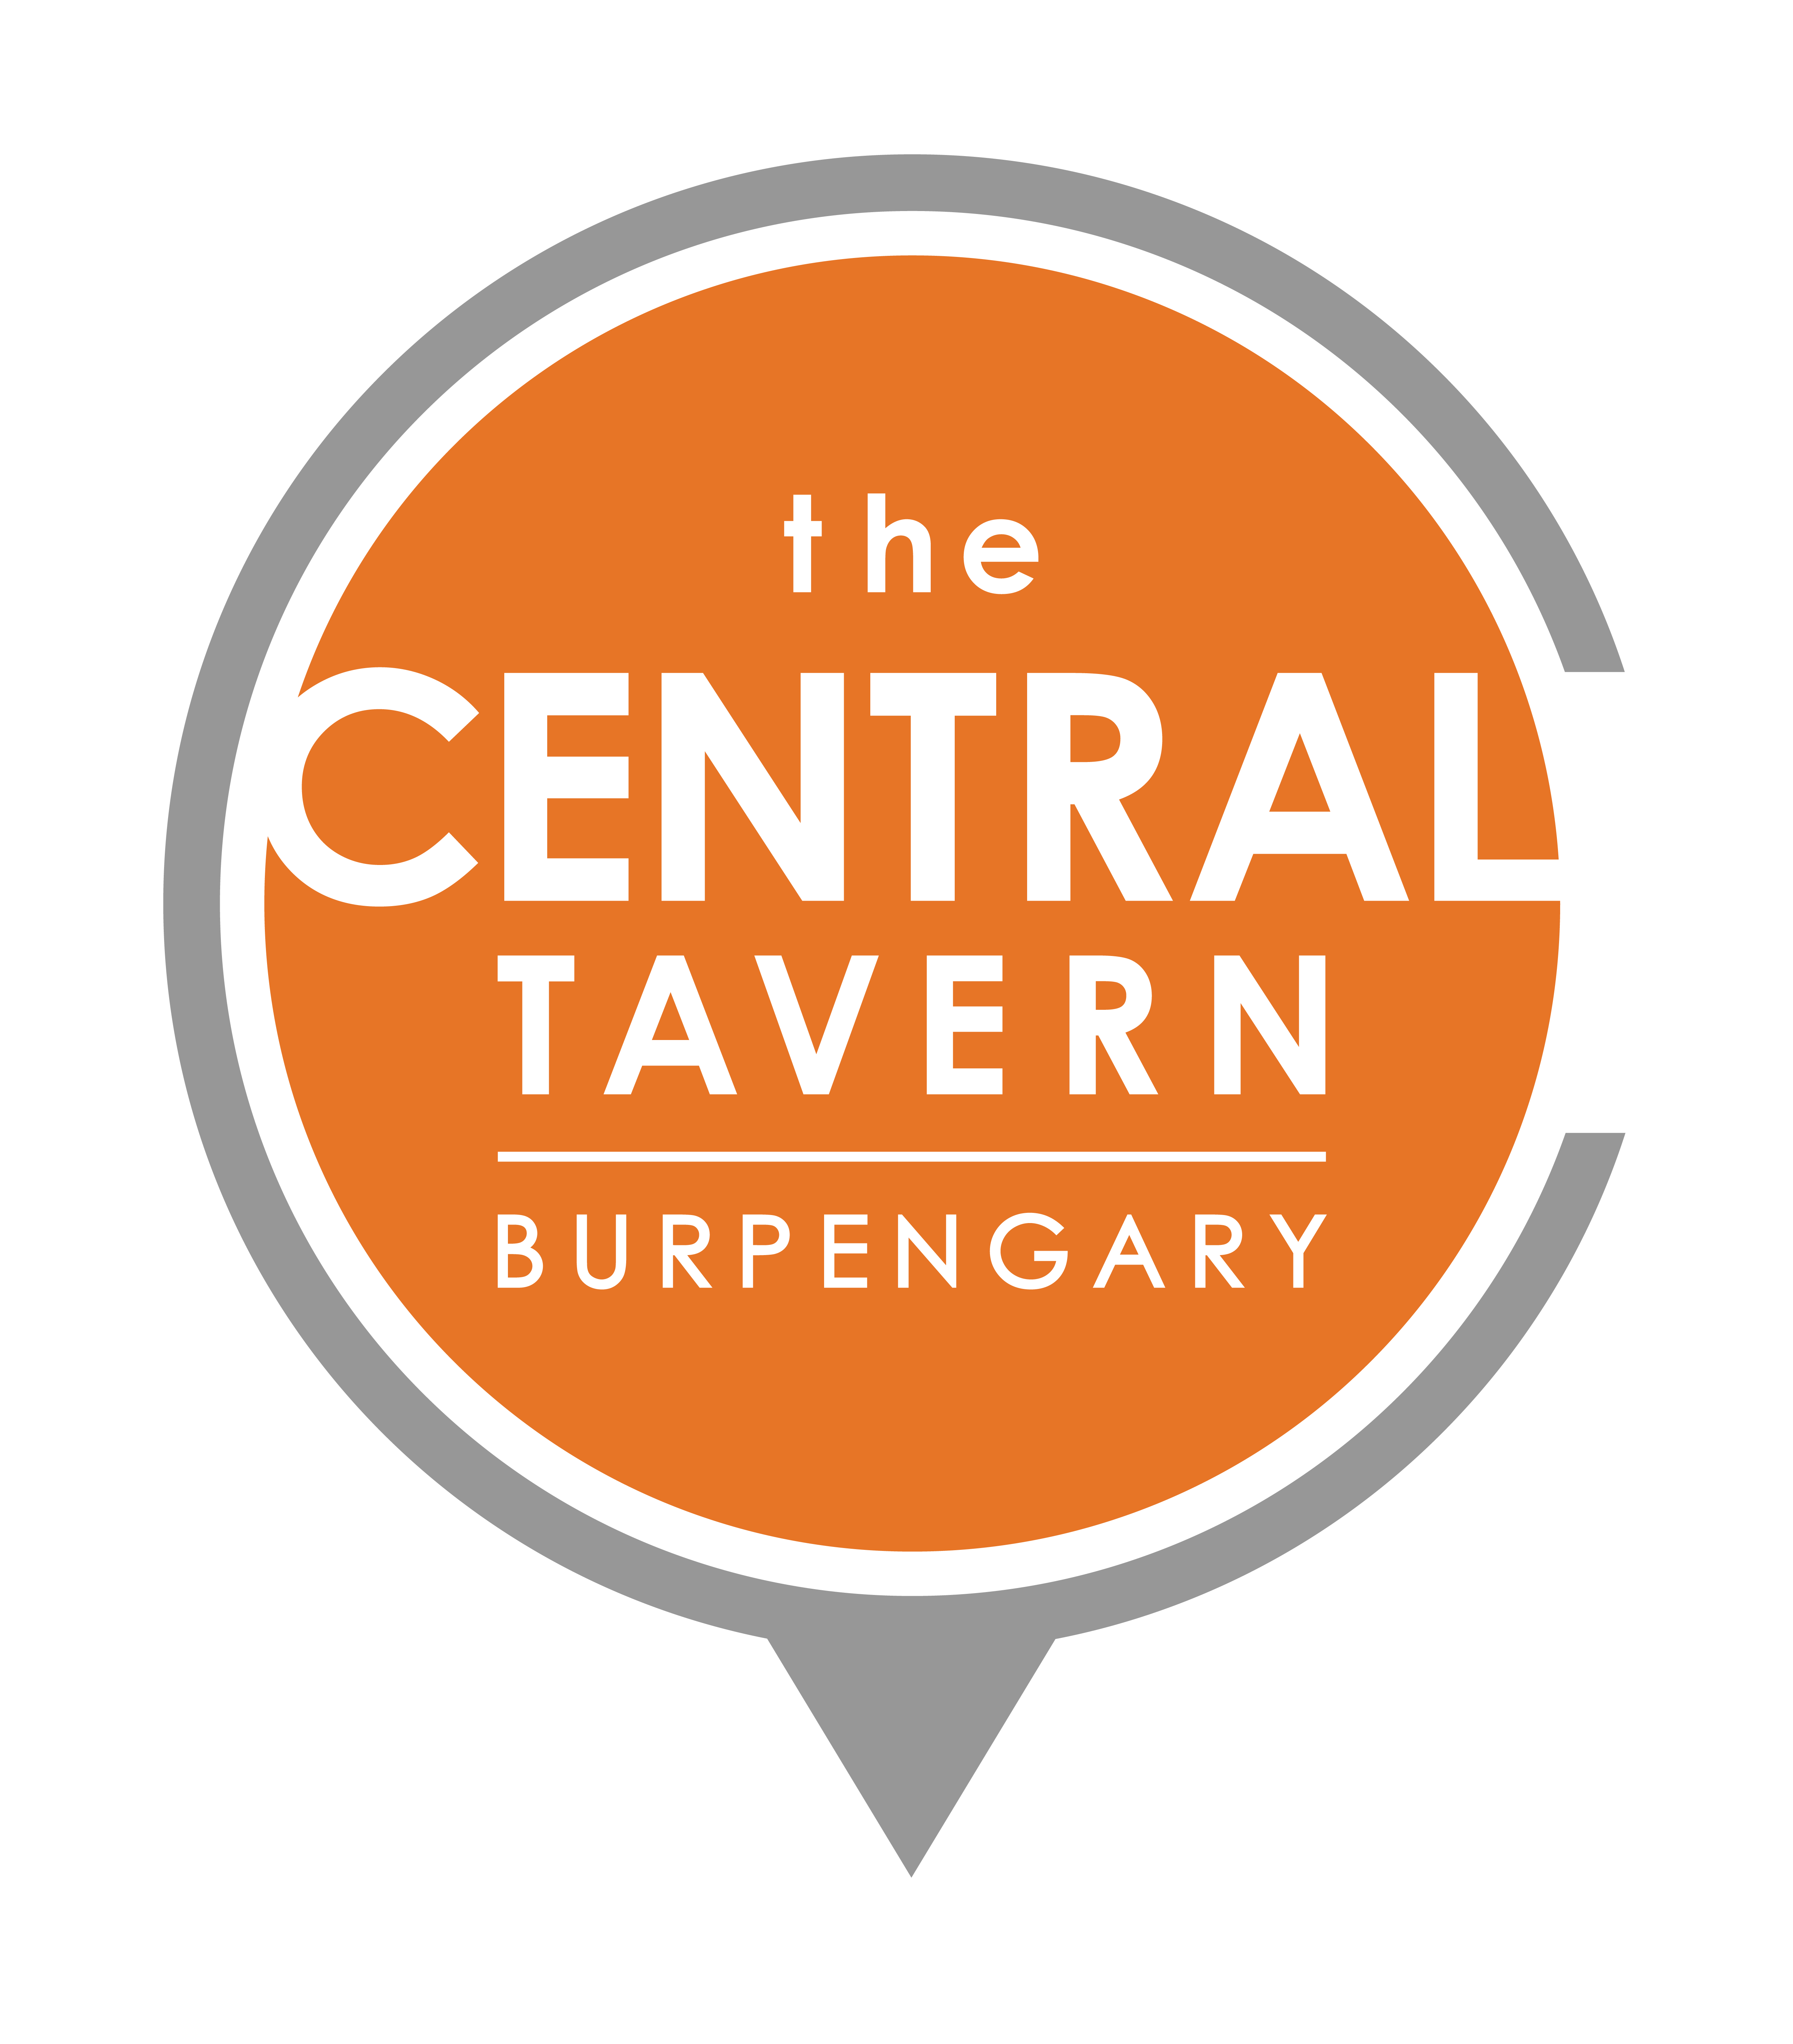 The Central Tavern